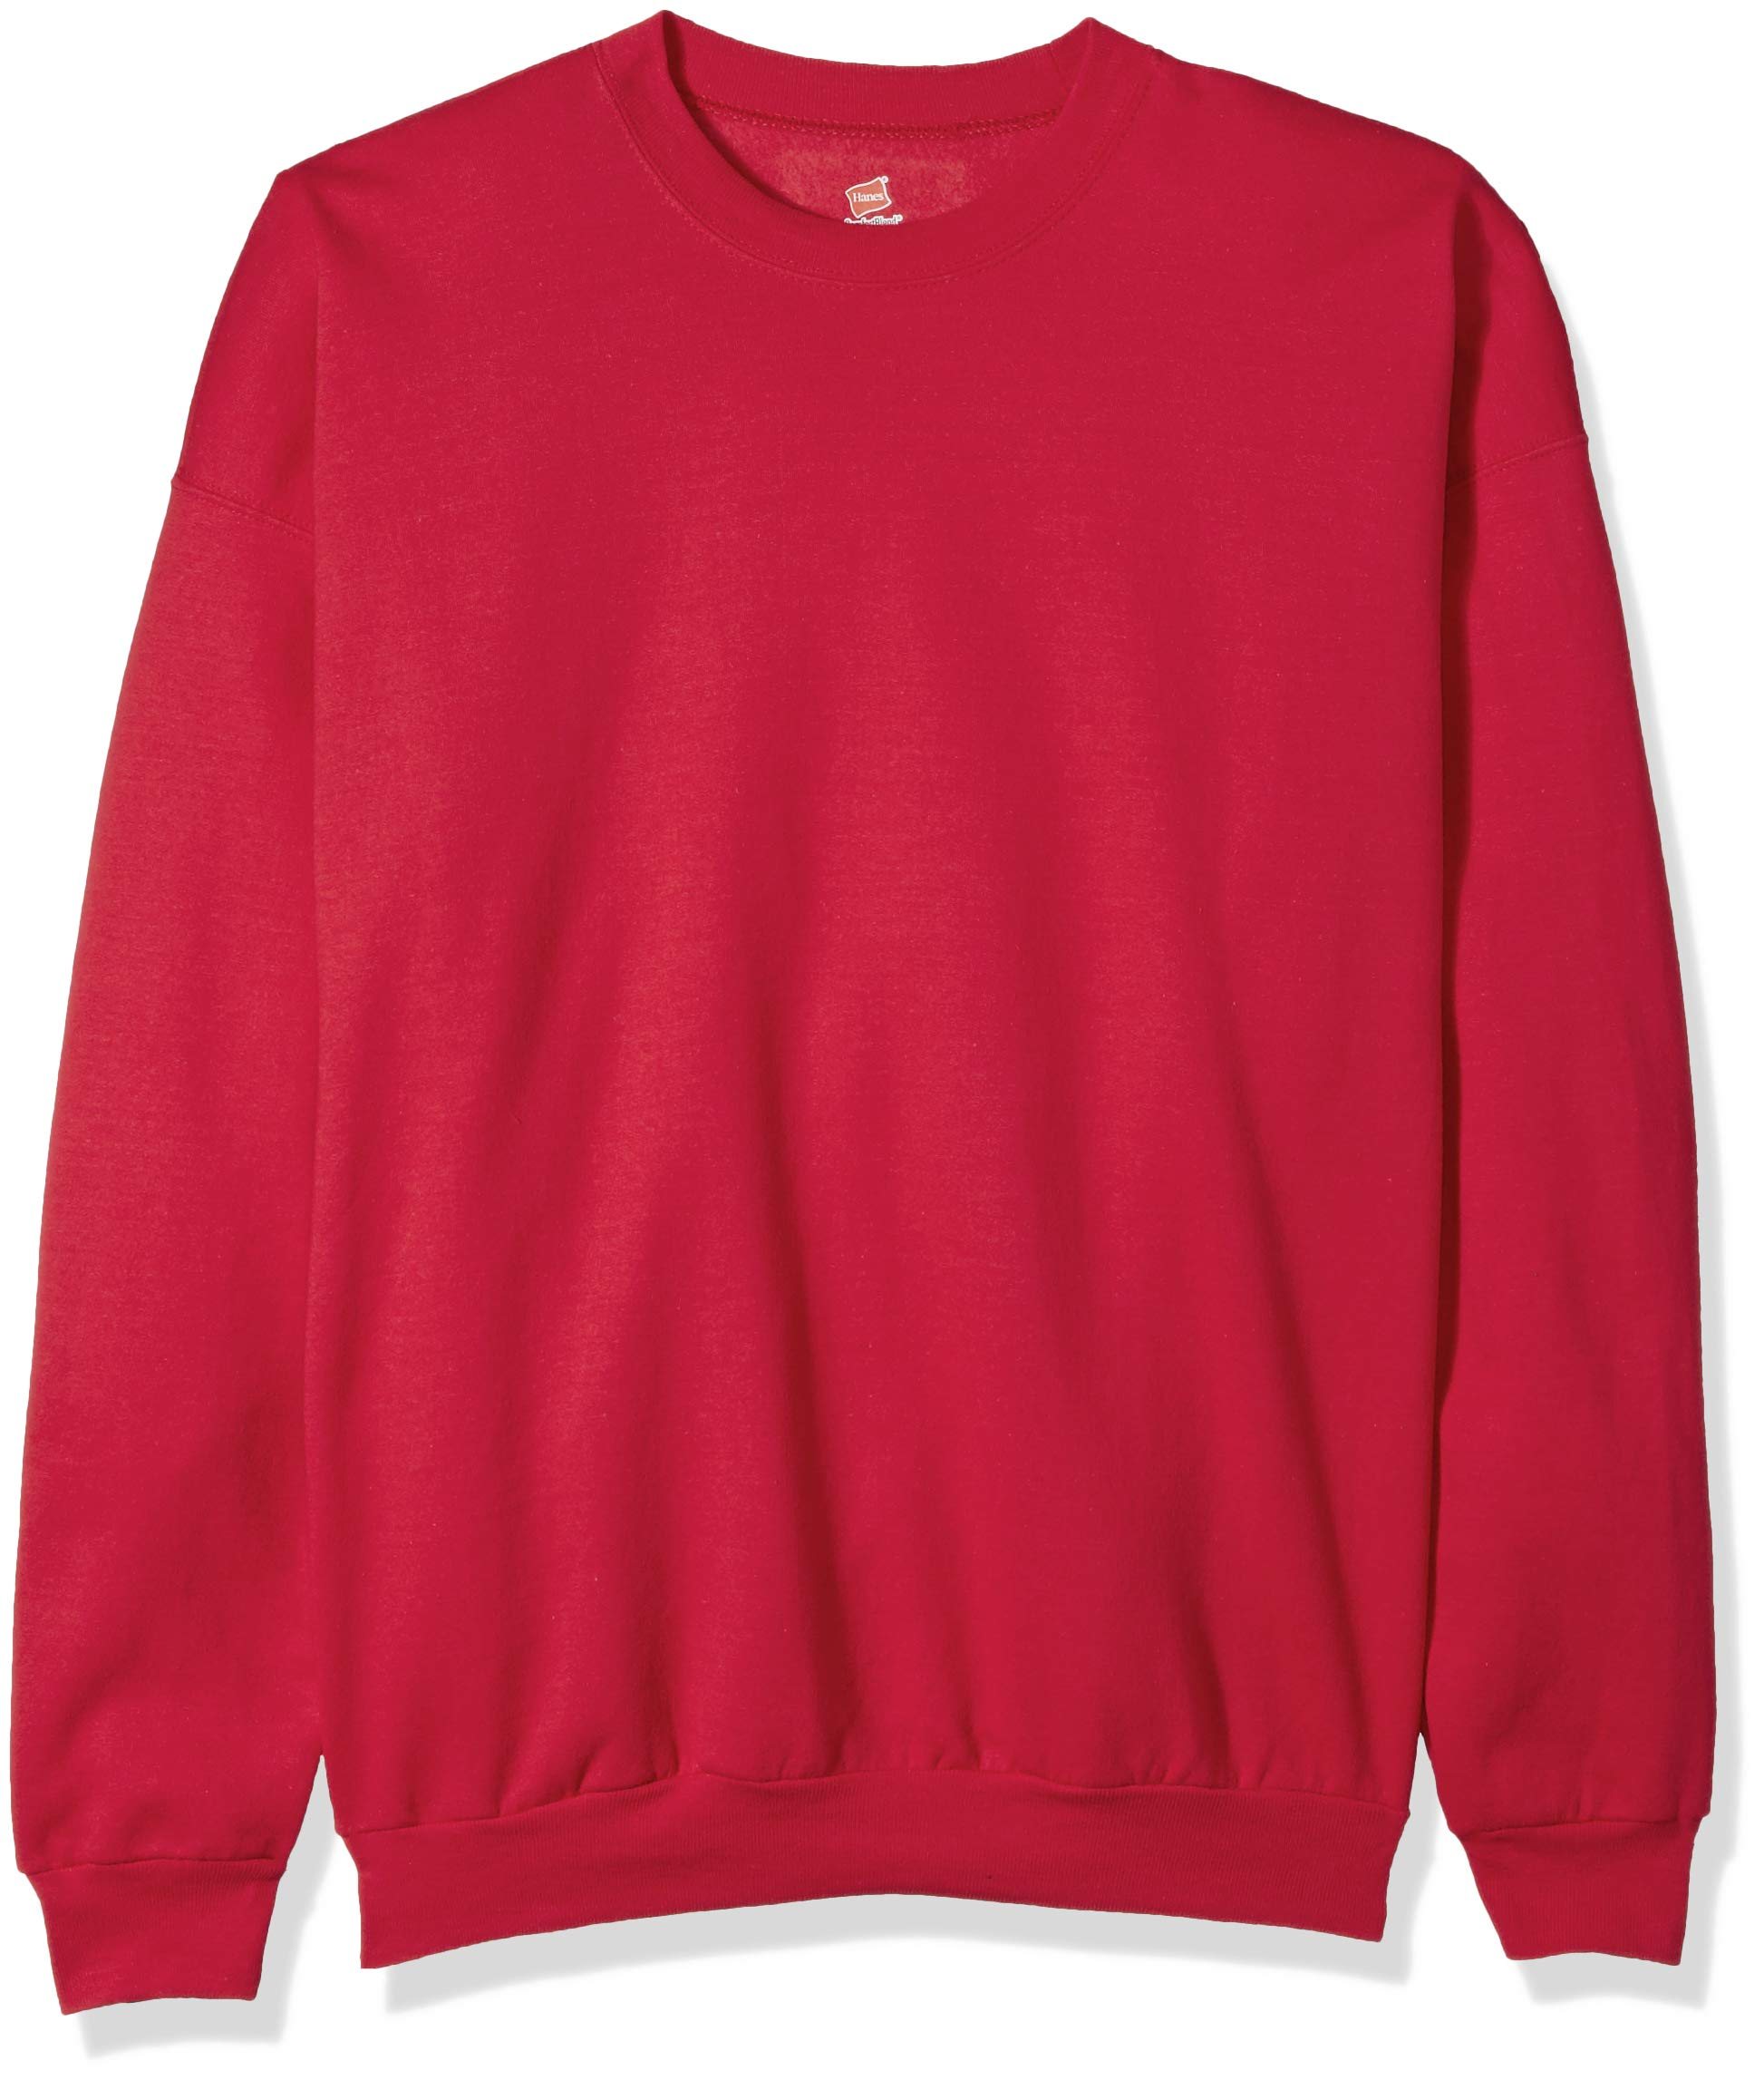 Hanes Men's EcoSmart Fleece Sweatshirt, Deep Red, 3XL